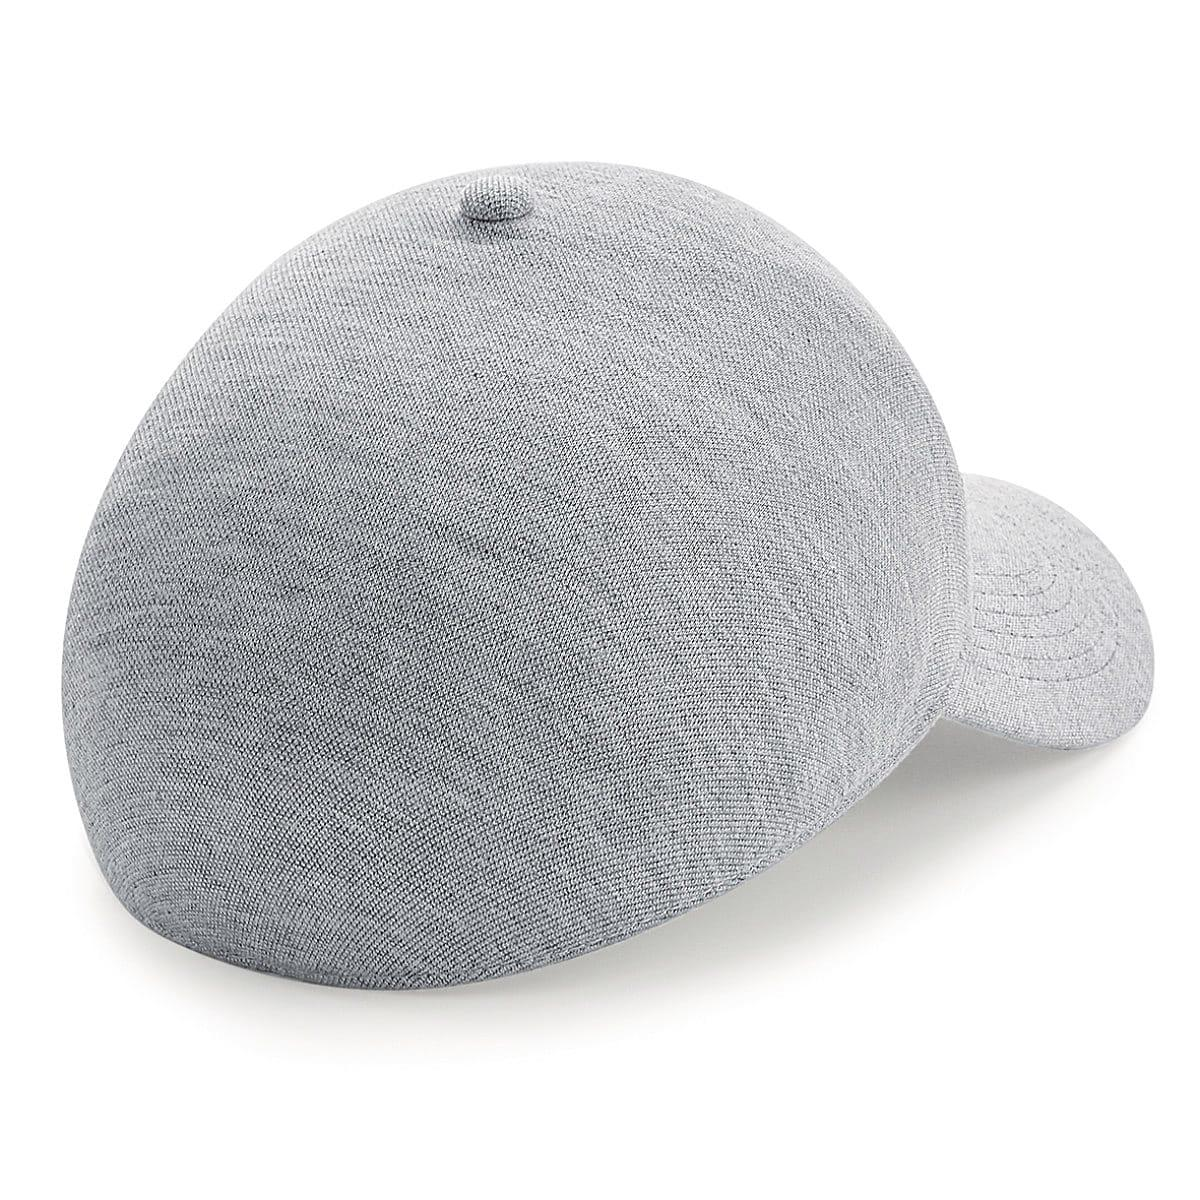 Beechfield Seamless Athleisure Cap in Heather Grey (Product Code: B556)